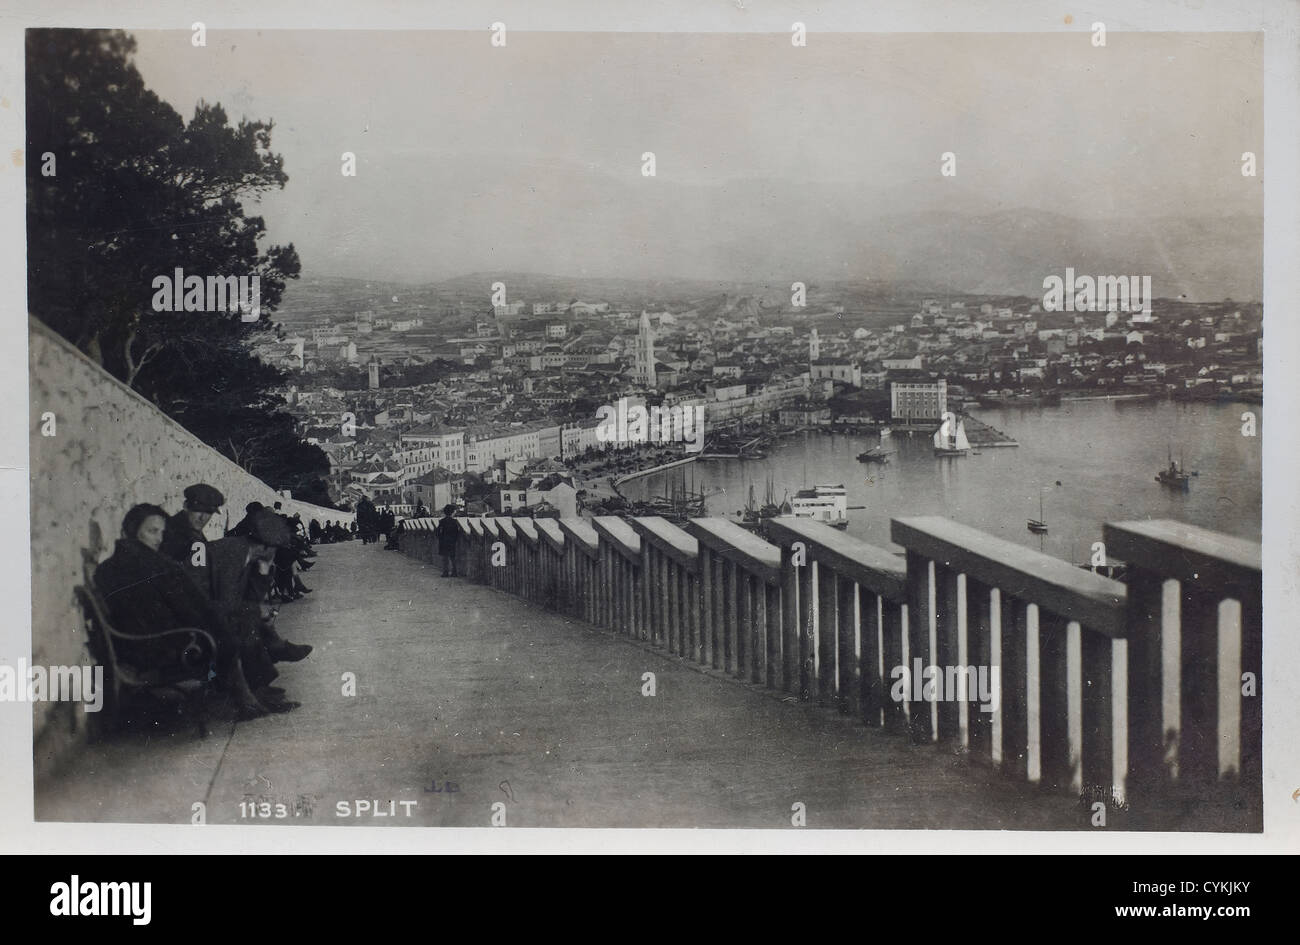 A view of Split in an old postcard - Stock Image